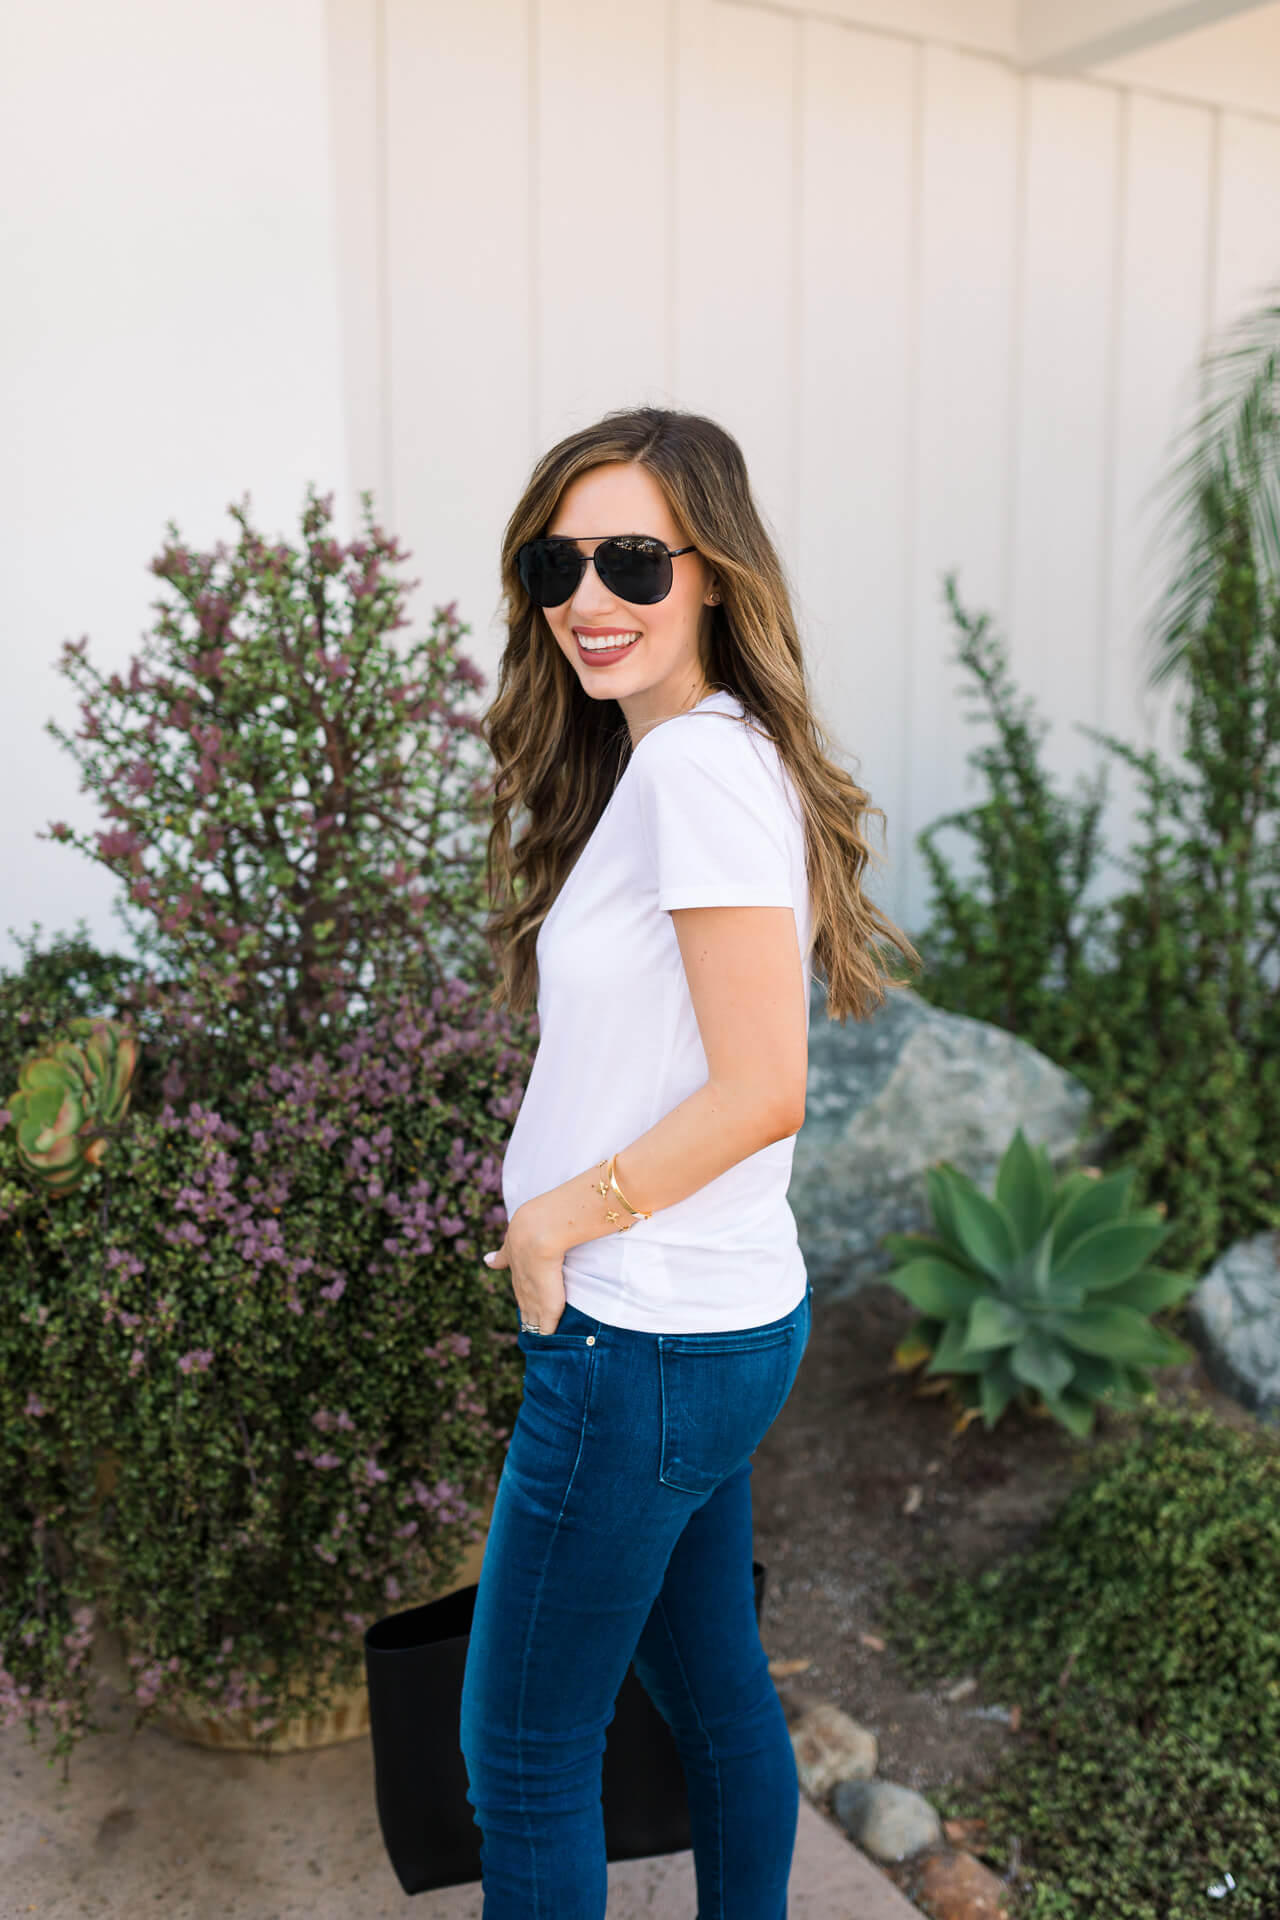 the most flattering jeans - M Loves M Los Angeles and Orange County fashion and lifestyle blogger @marmar